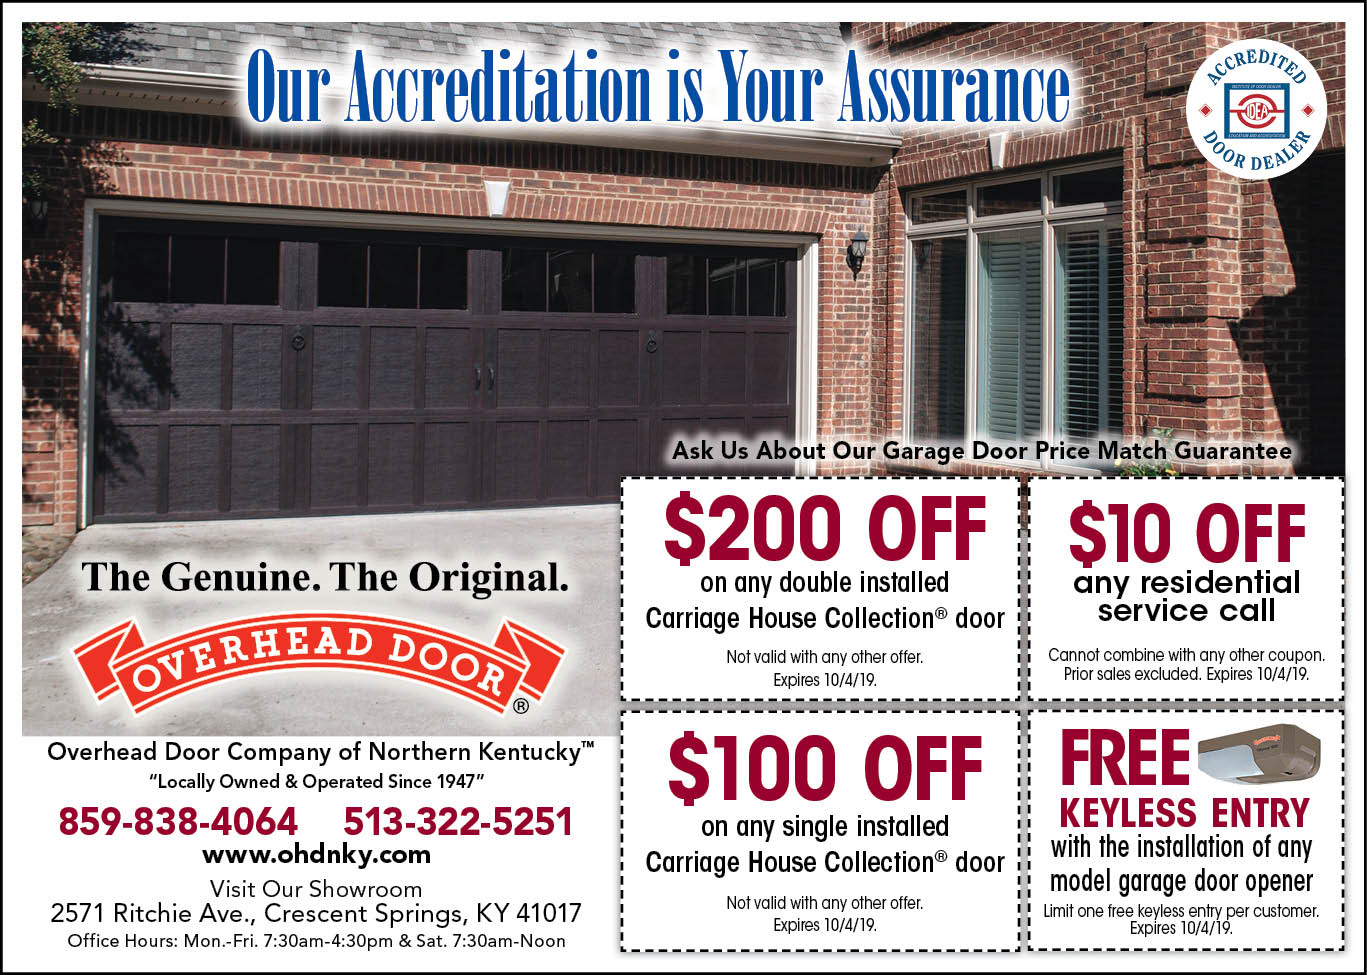 September garage door coupon offers